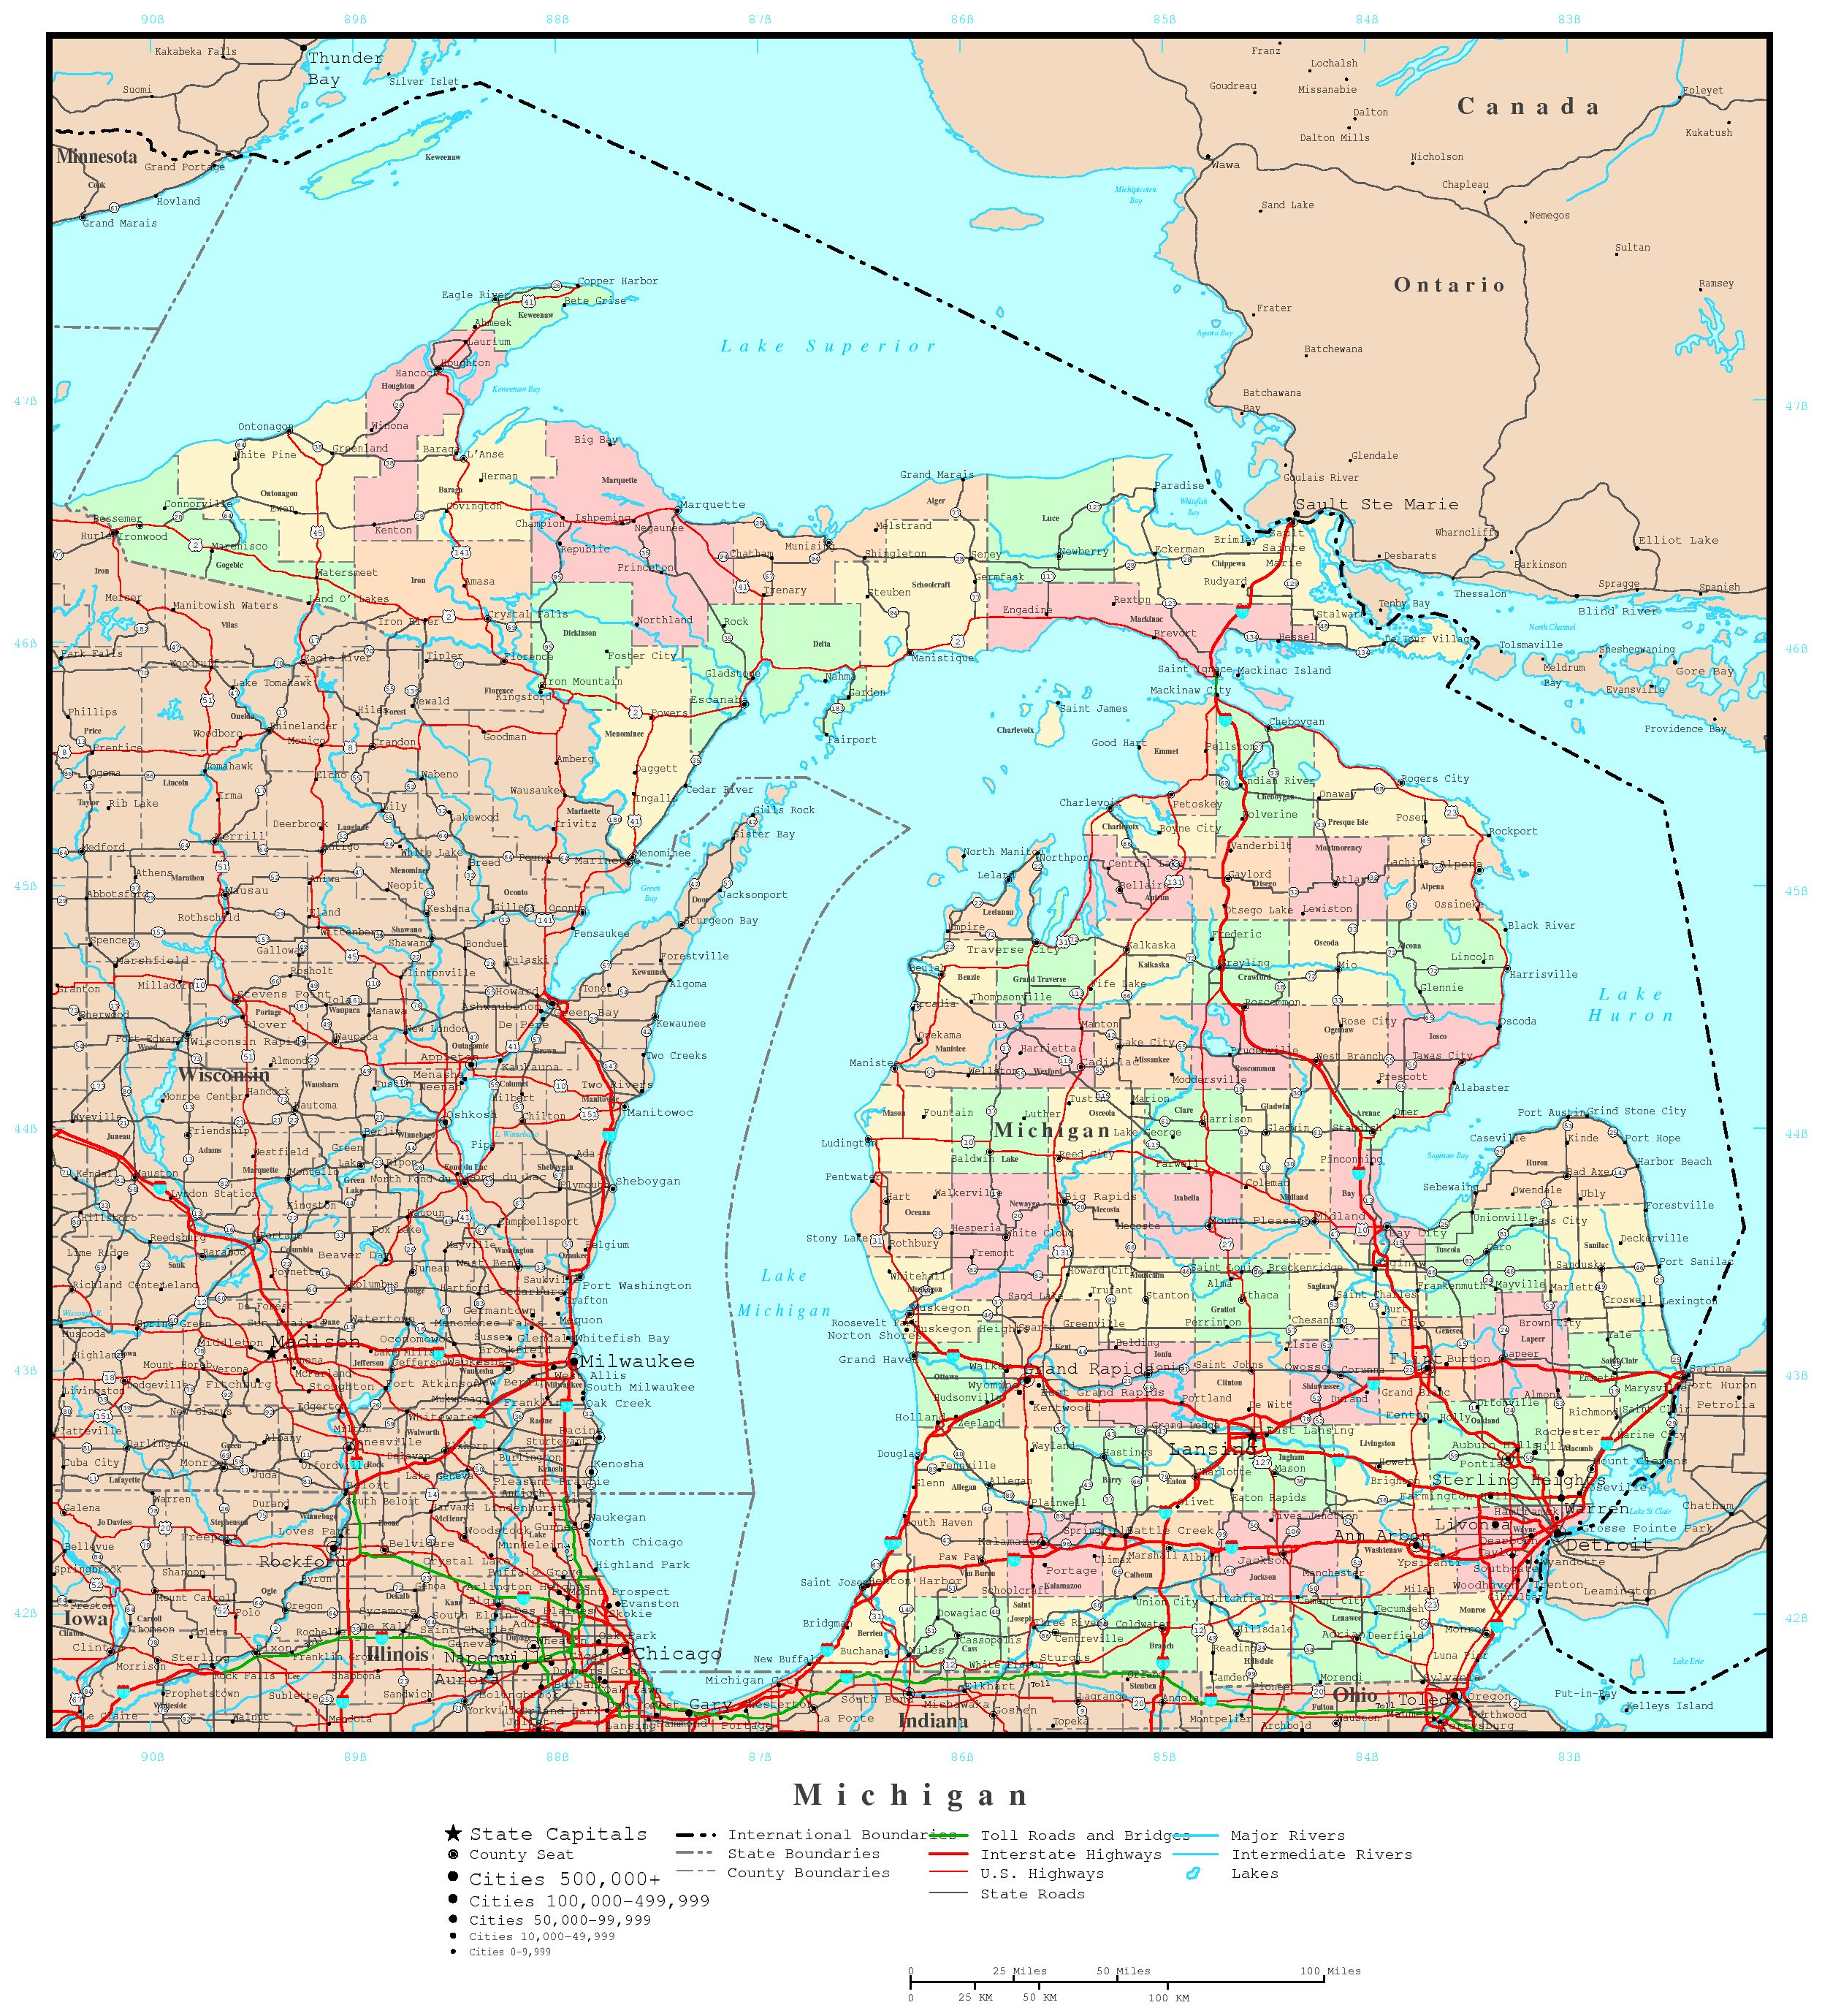 Michigan Political Map - Micigan map